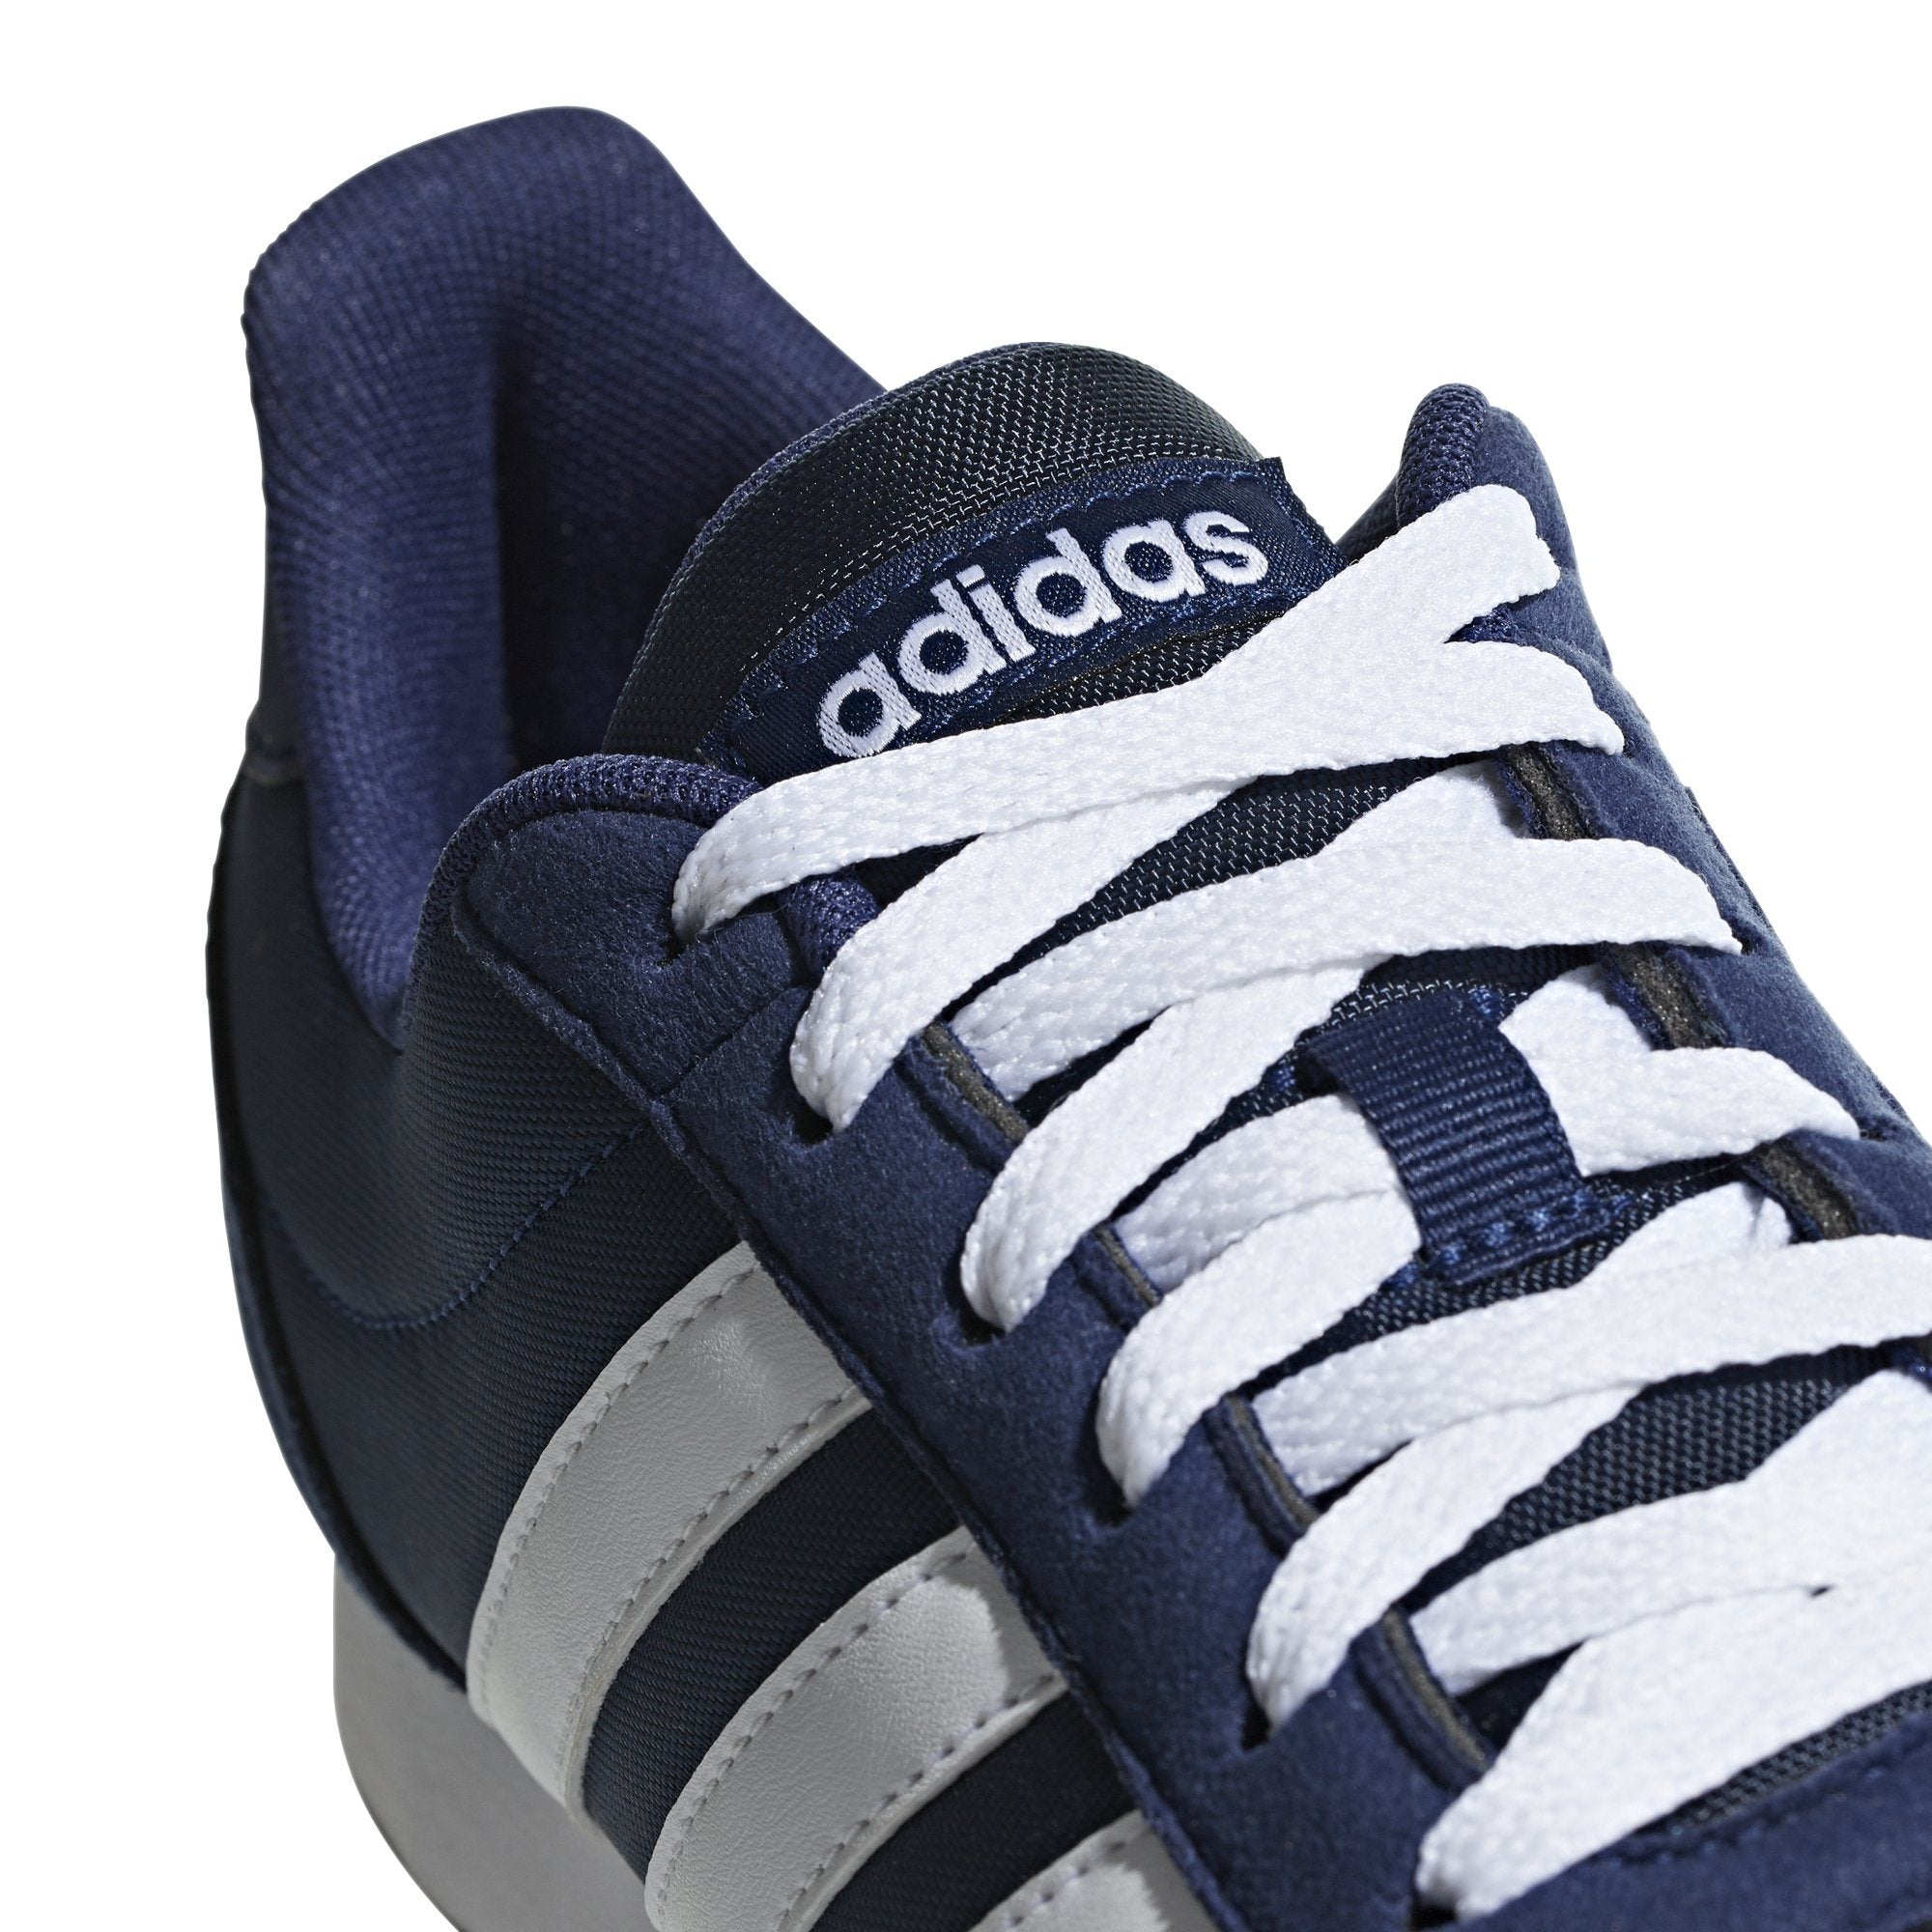 Adidas Mens V Racer 2.0 Shoes - dark blue/ftwr white/ftwr white SP-Footwear-Mens Adidas